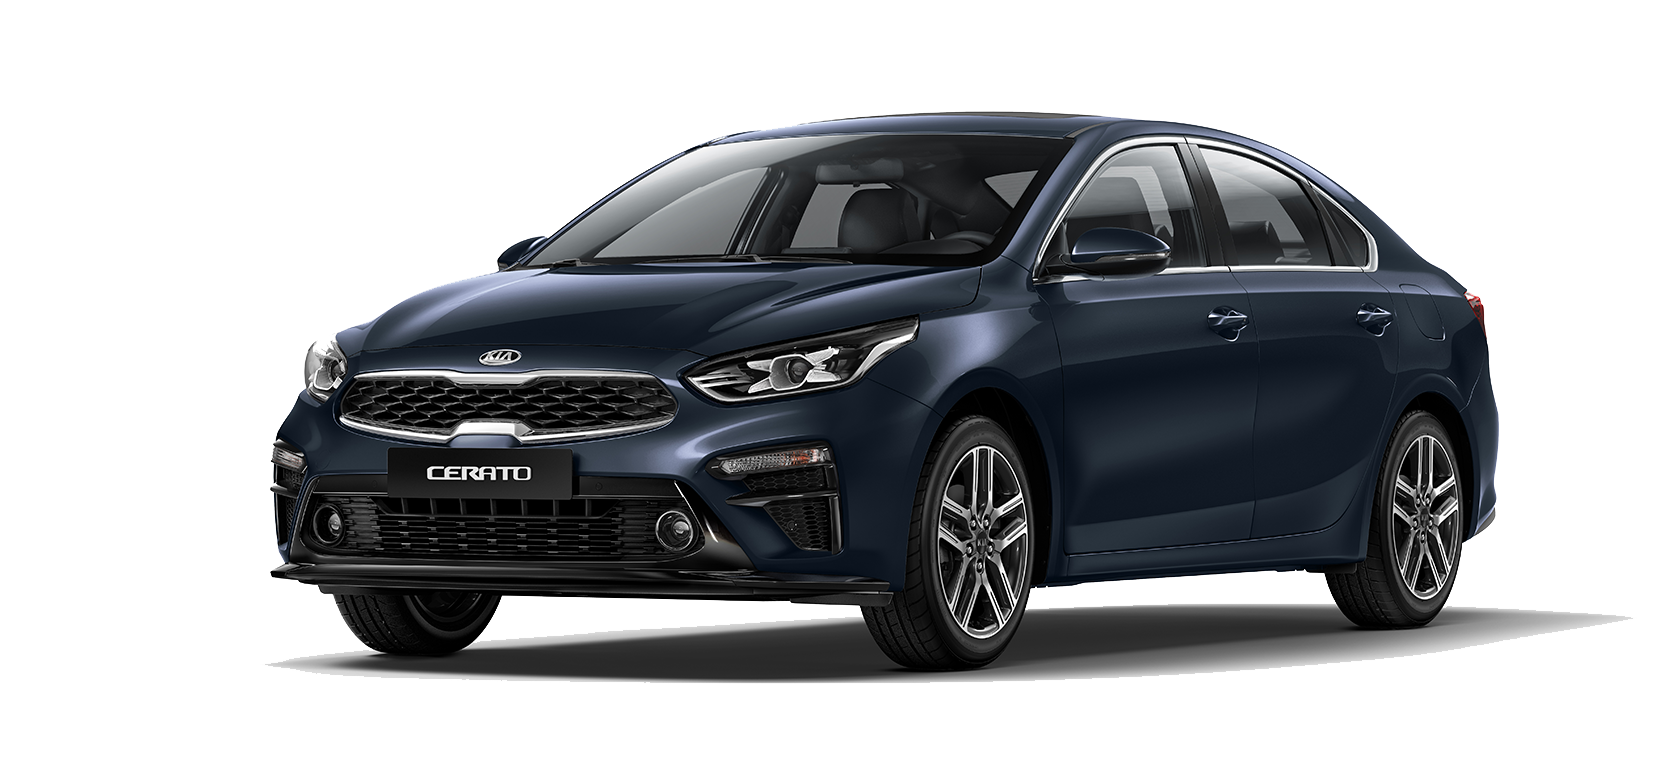 75 The Best Kia K3 2019 History